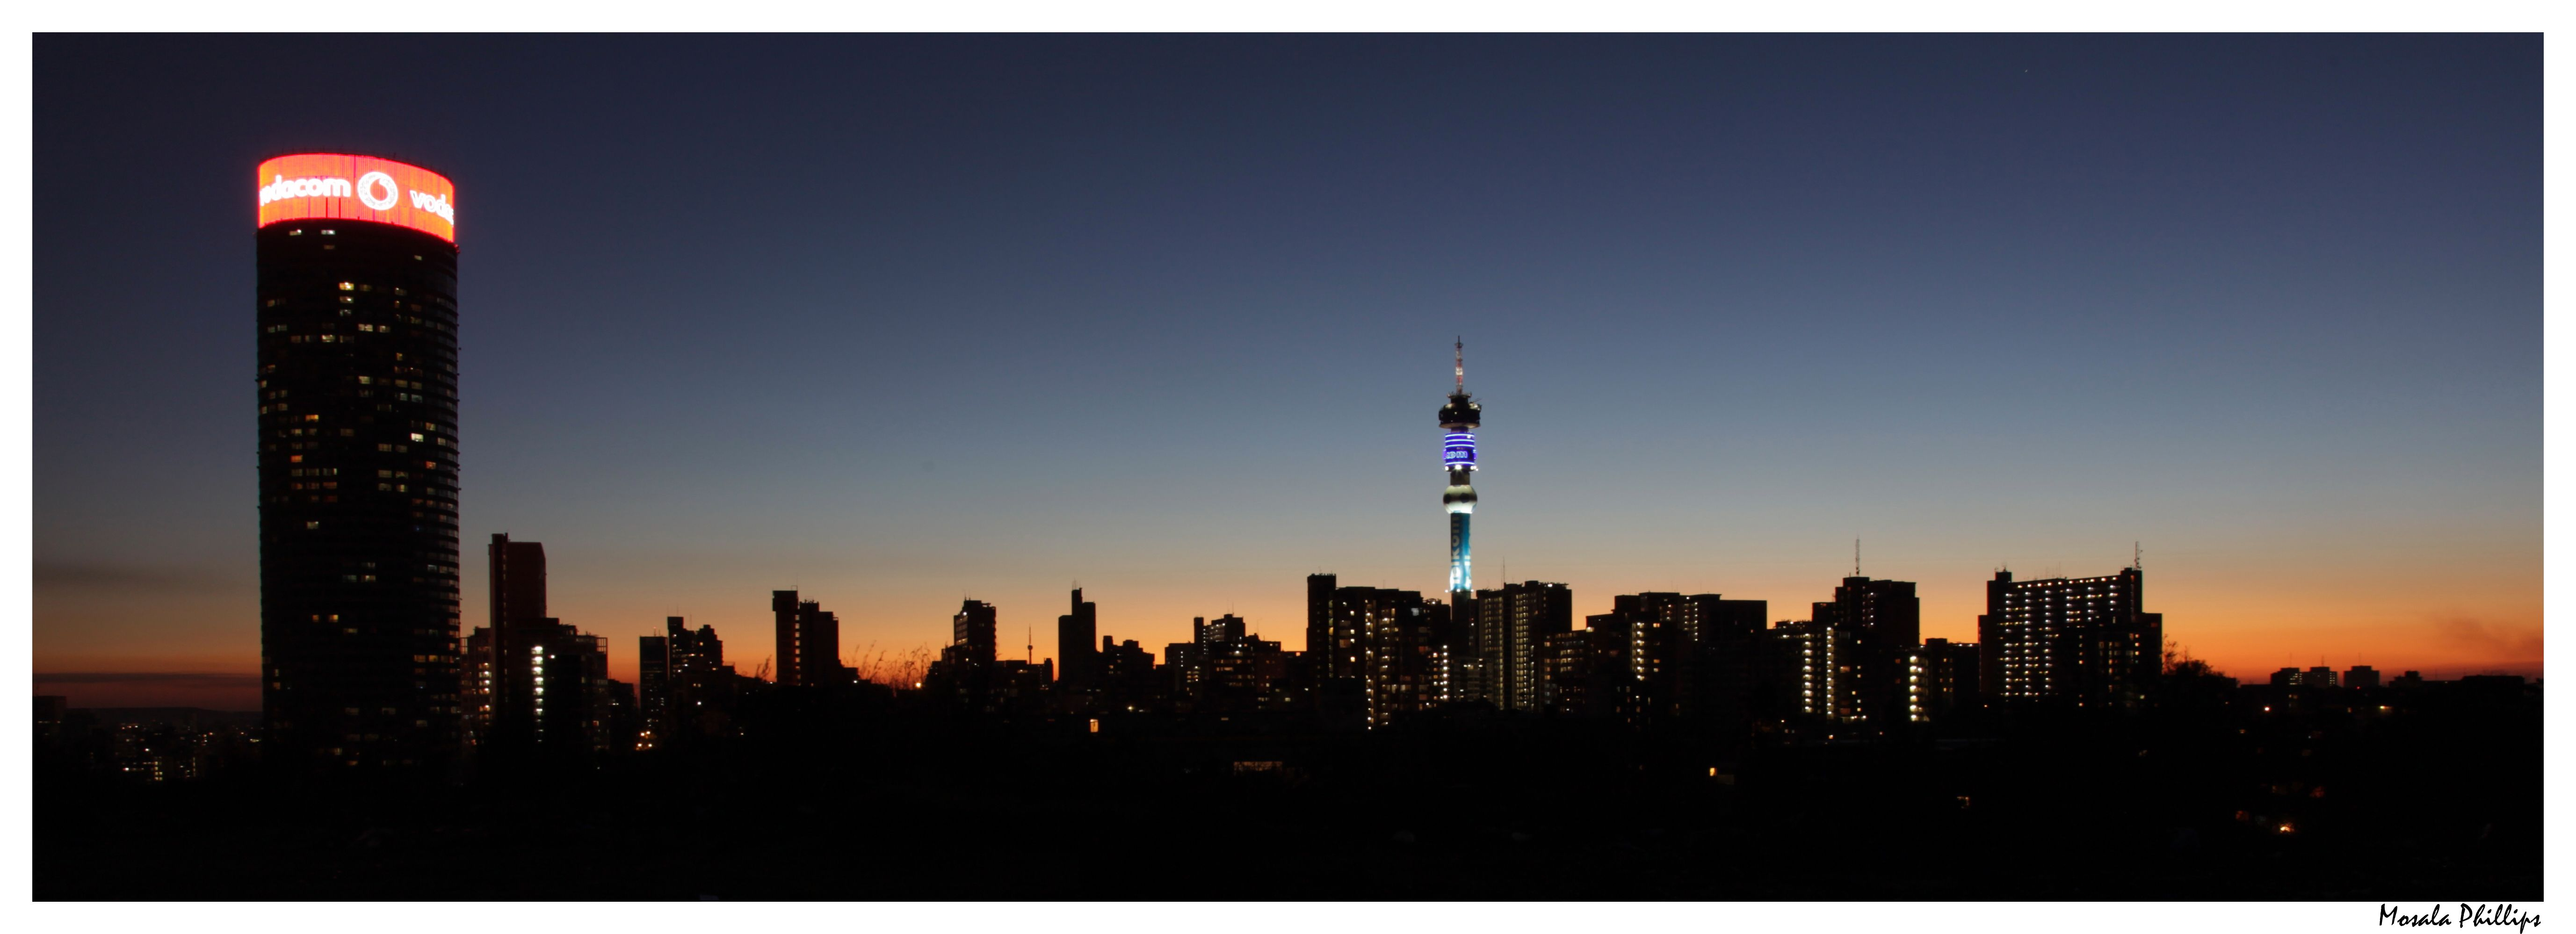 Johannesburg city skyline images google search art pinterest johannesburg city skyline images google search thecheapjerseys Choice Image